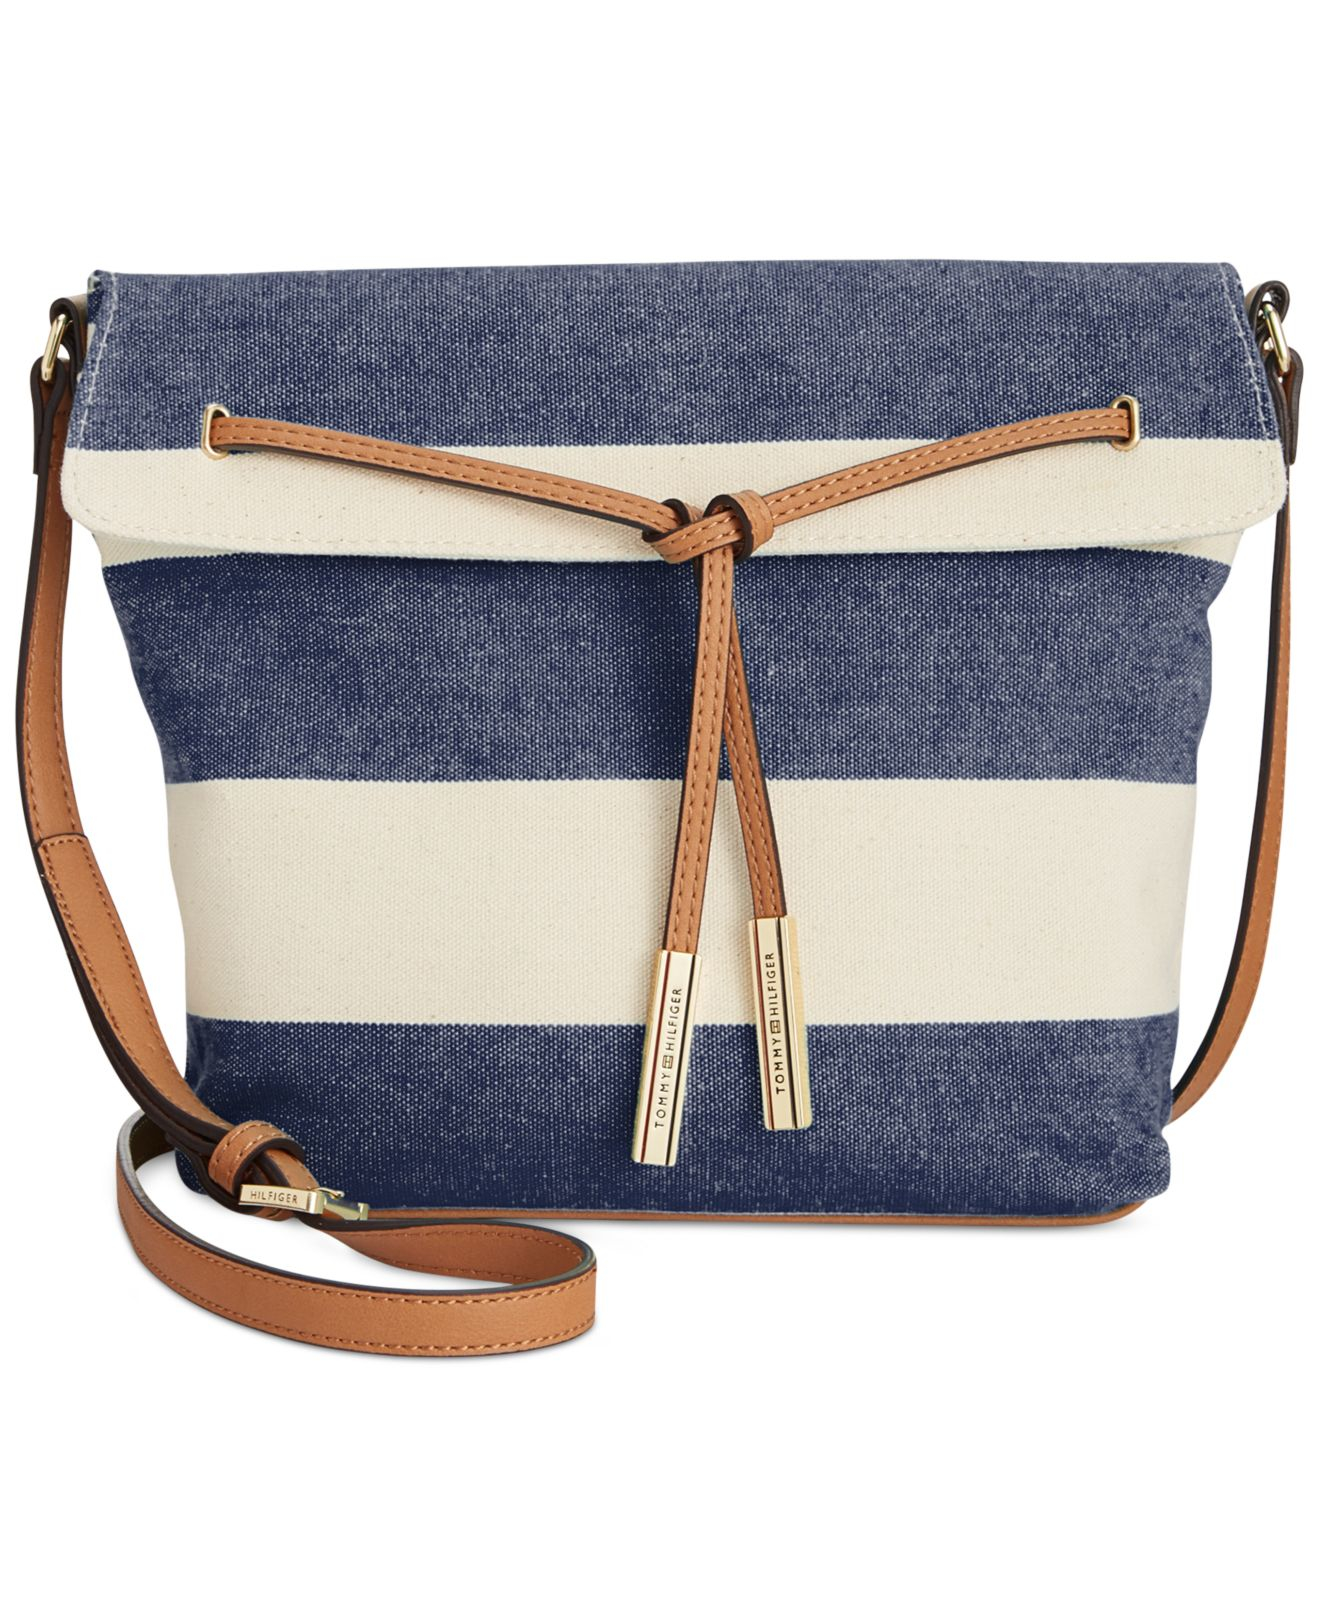 4ddb73d317c Tommy Hilfiger Emma Woven Rugby Stripe Drawstring Crossbody in Blue ...